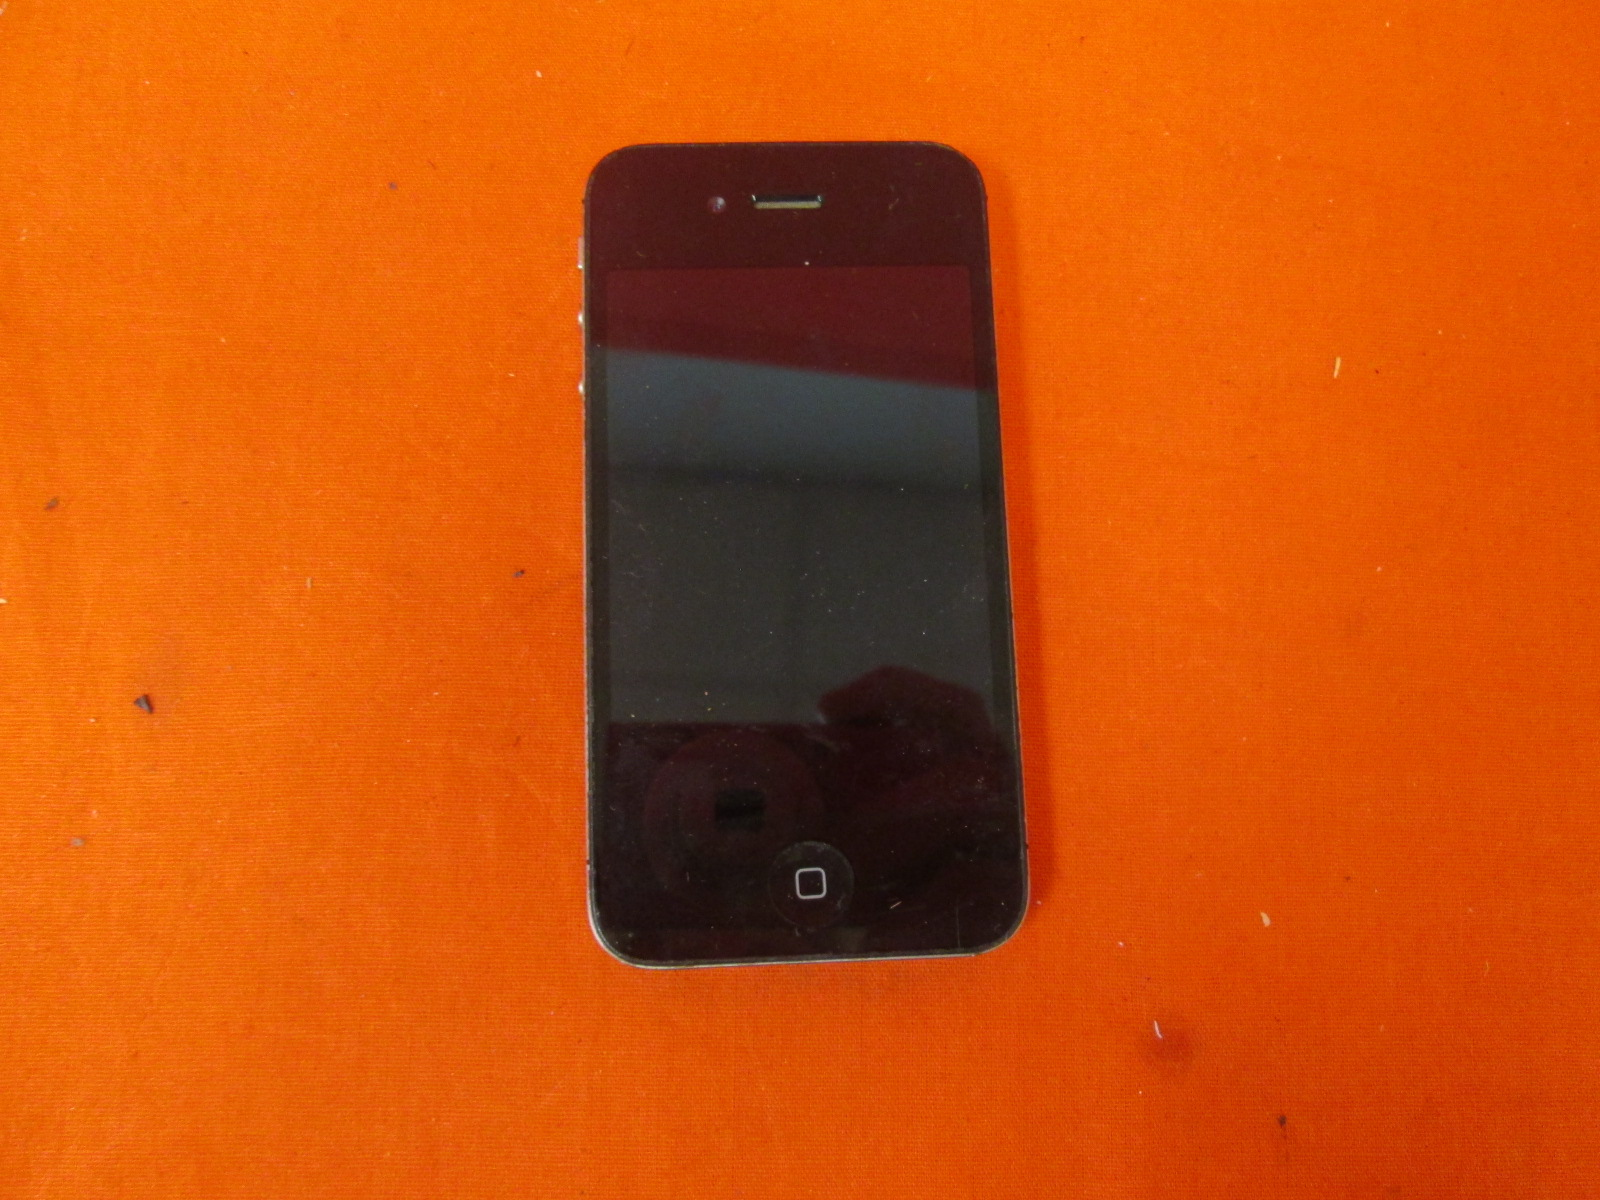 Apple iPhone 4S 16GB Locked Black